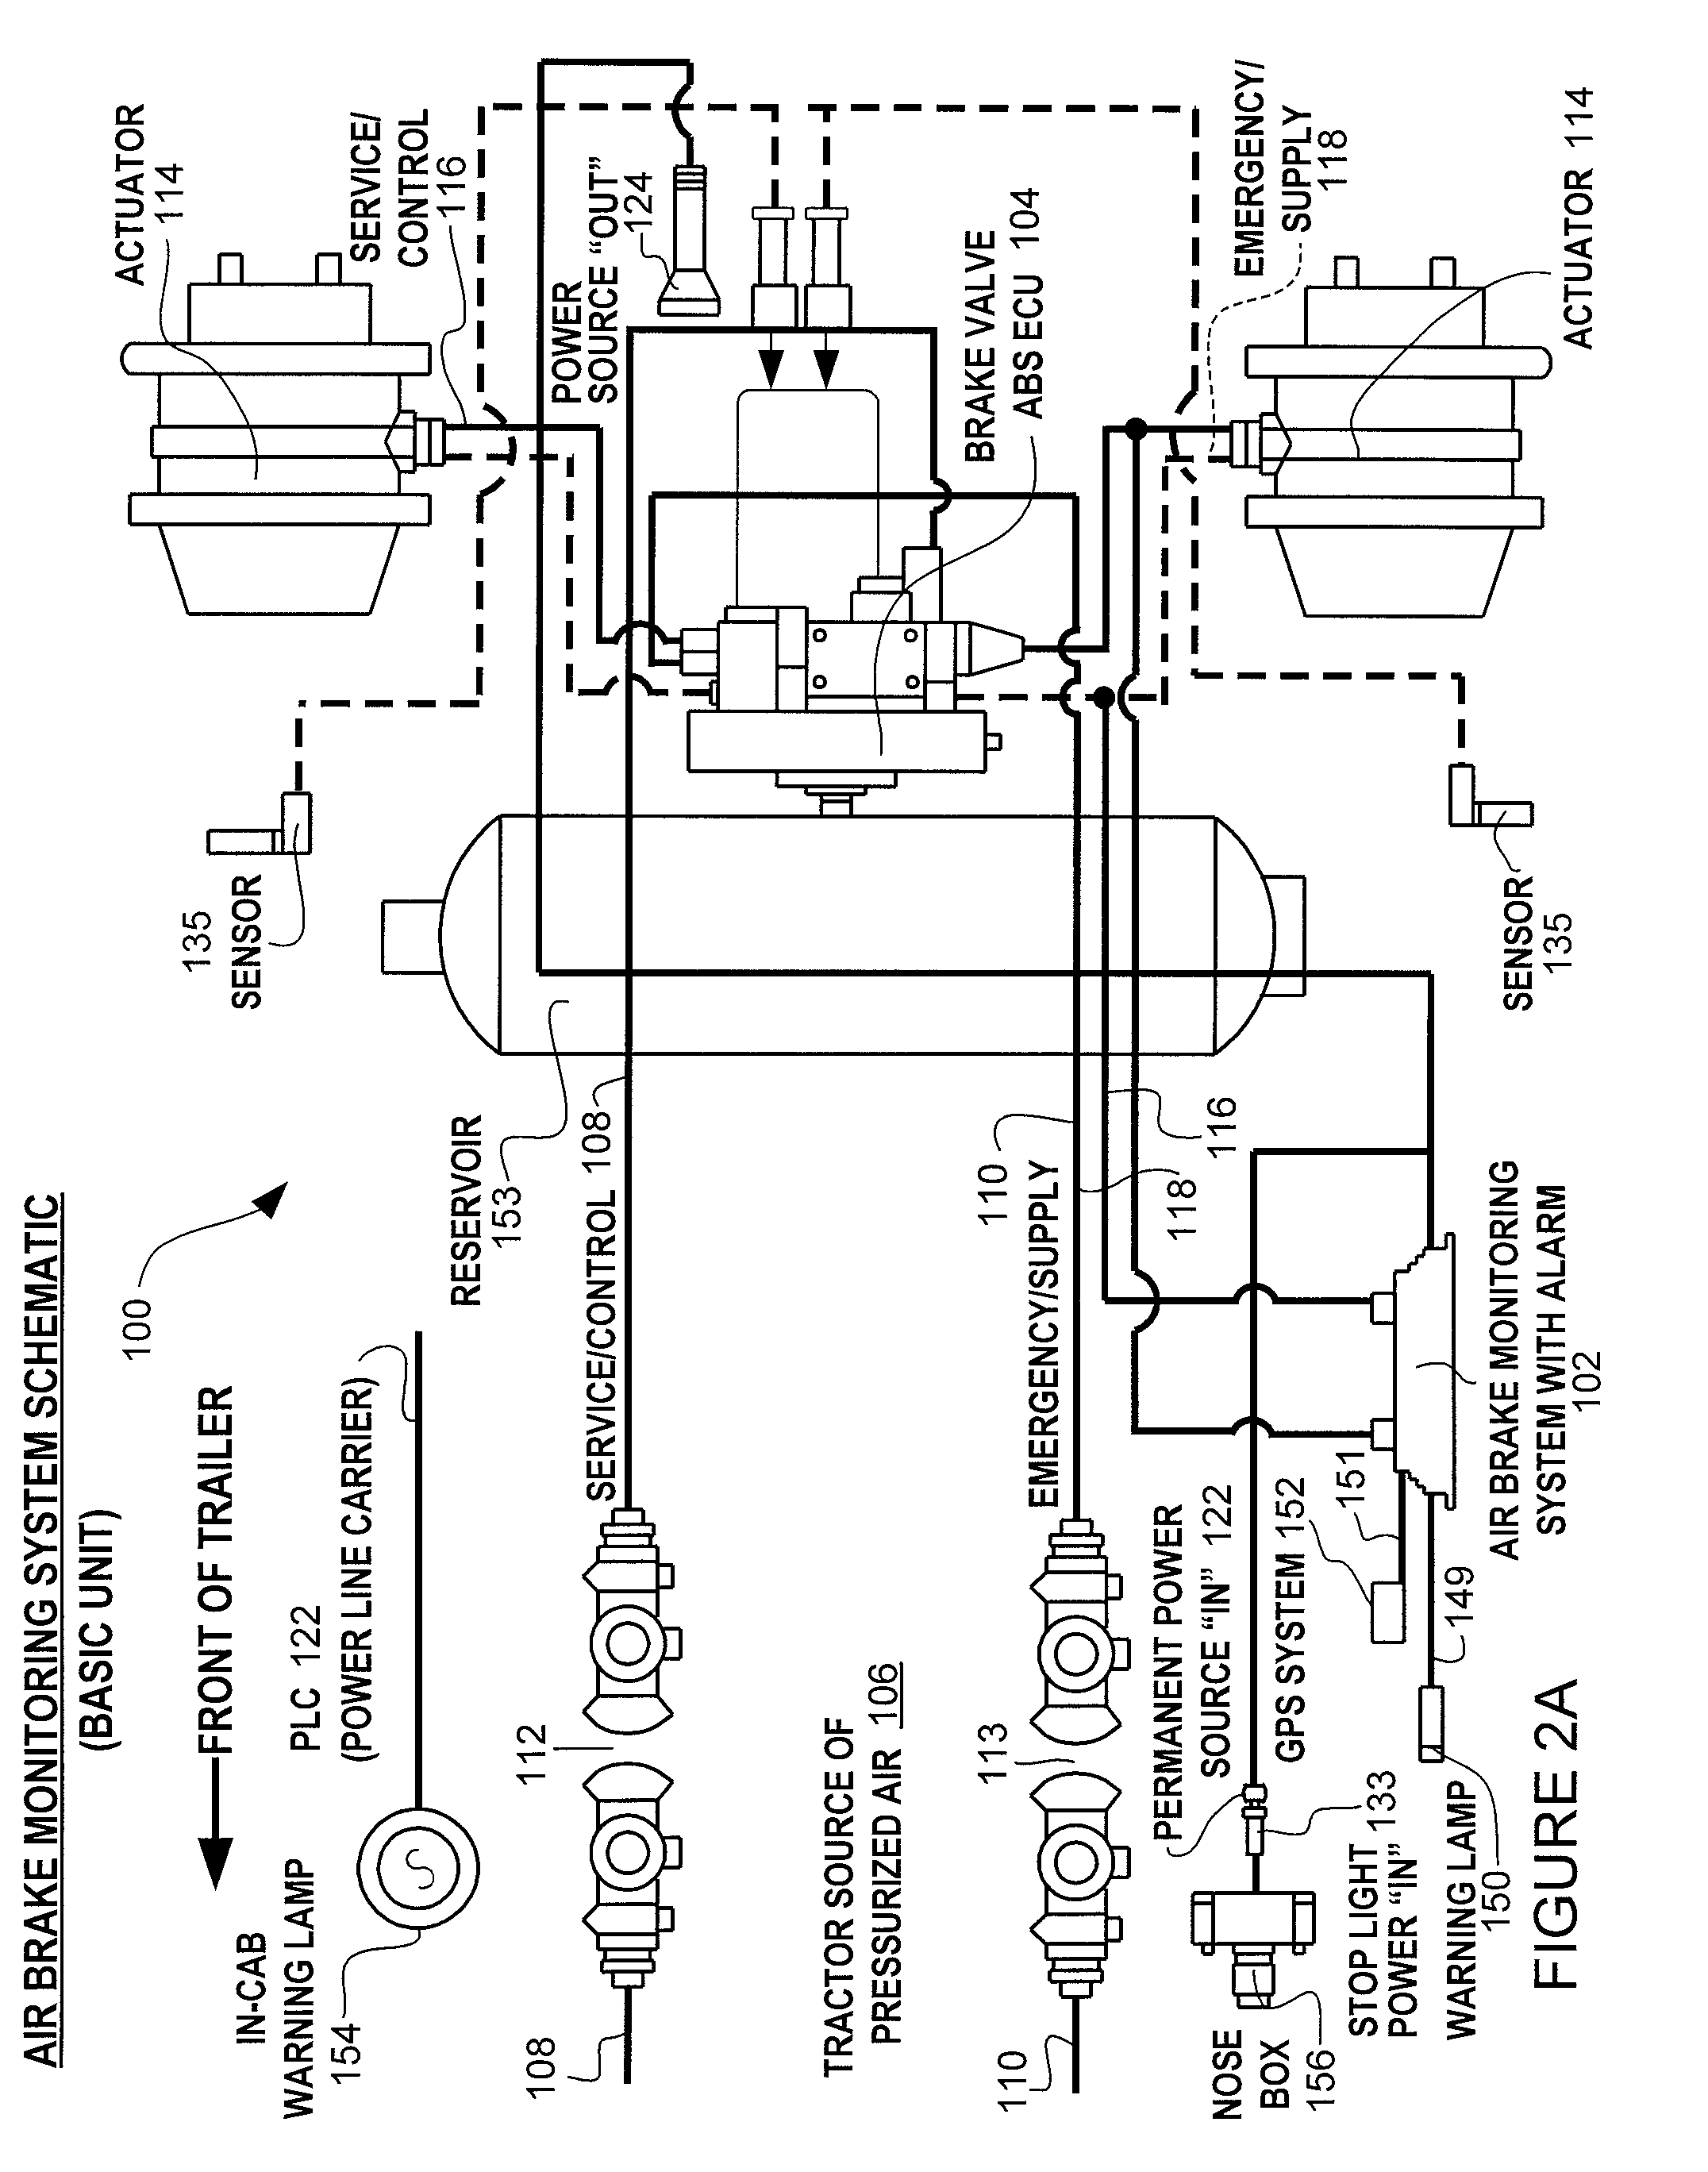 Wabco  pressor Wiring Diagram as well Kia Trailer Wiring Harness besides US8204668 additionally Haldex Full Function Abs Valve Relay Wiring Diagrams together with Abs Wiring Schematic. on wabco trailer abs wiring diagram